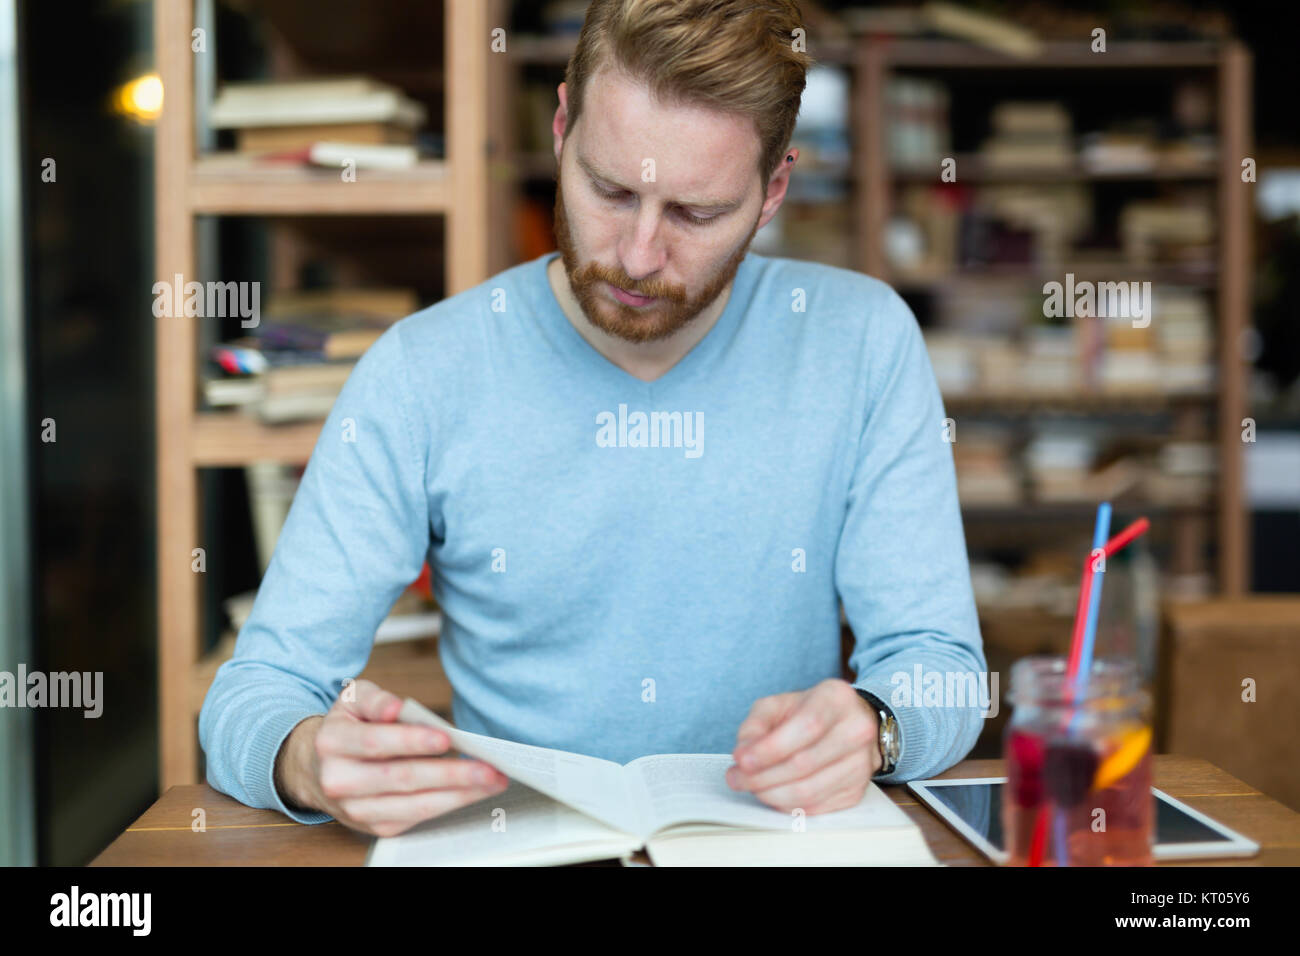 Young handsome student learning in coffee shop Photo Stock